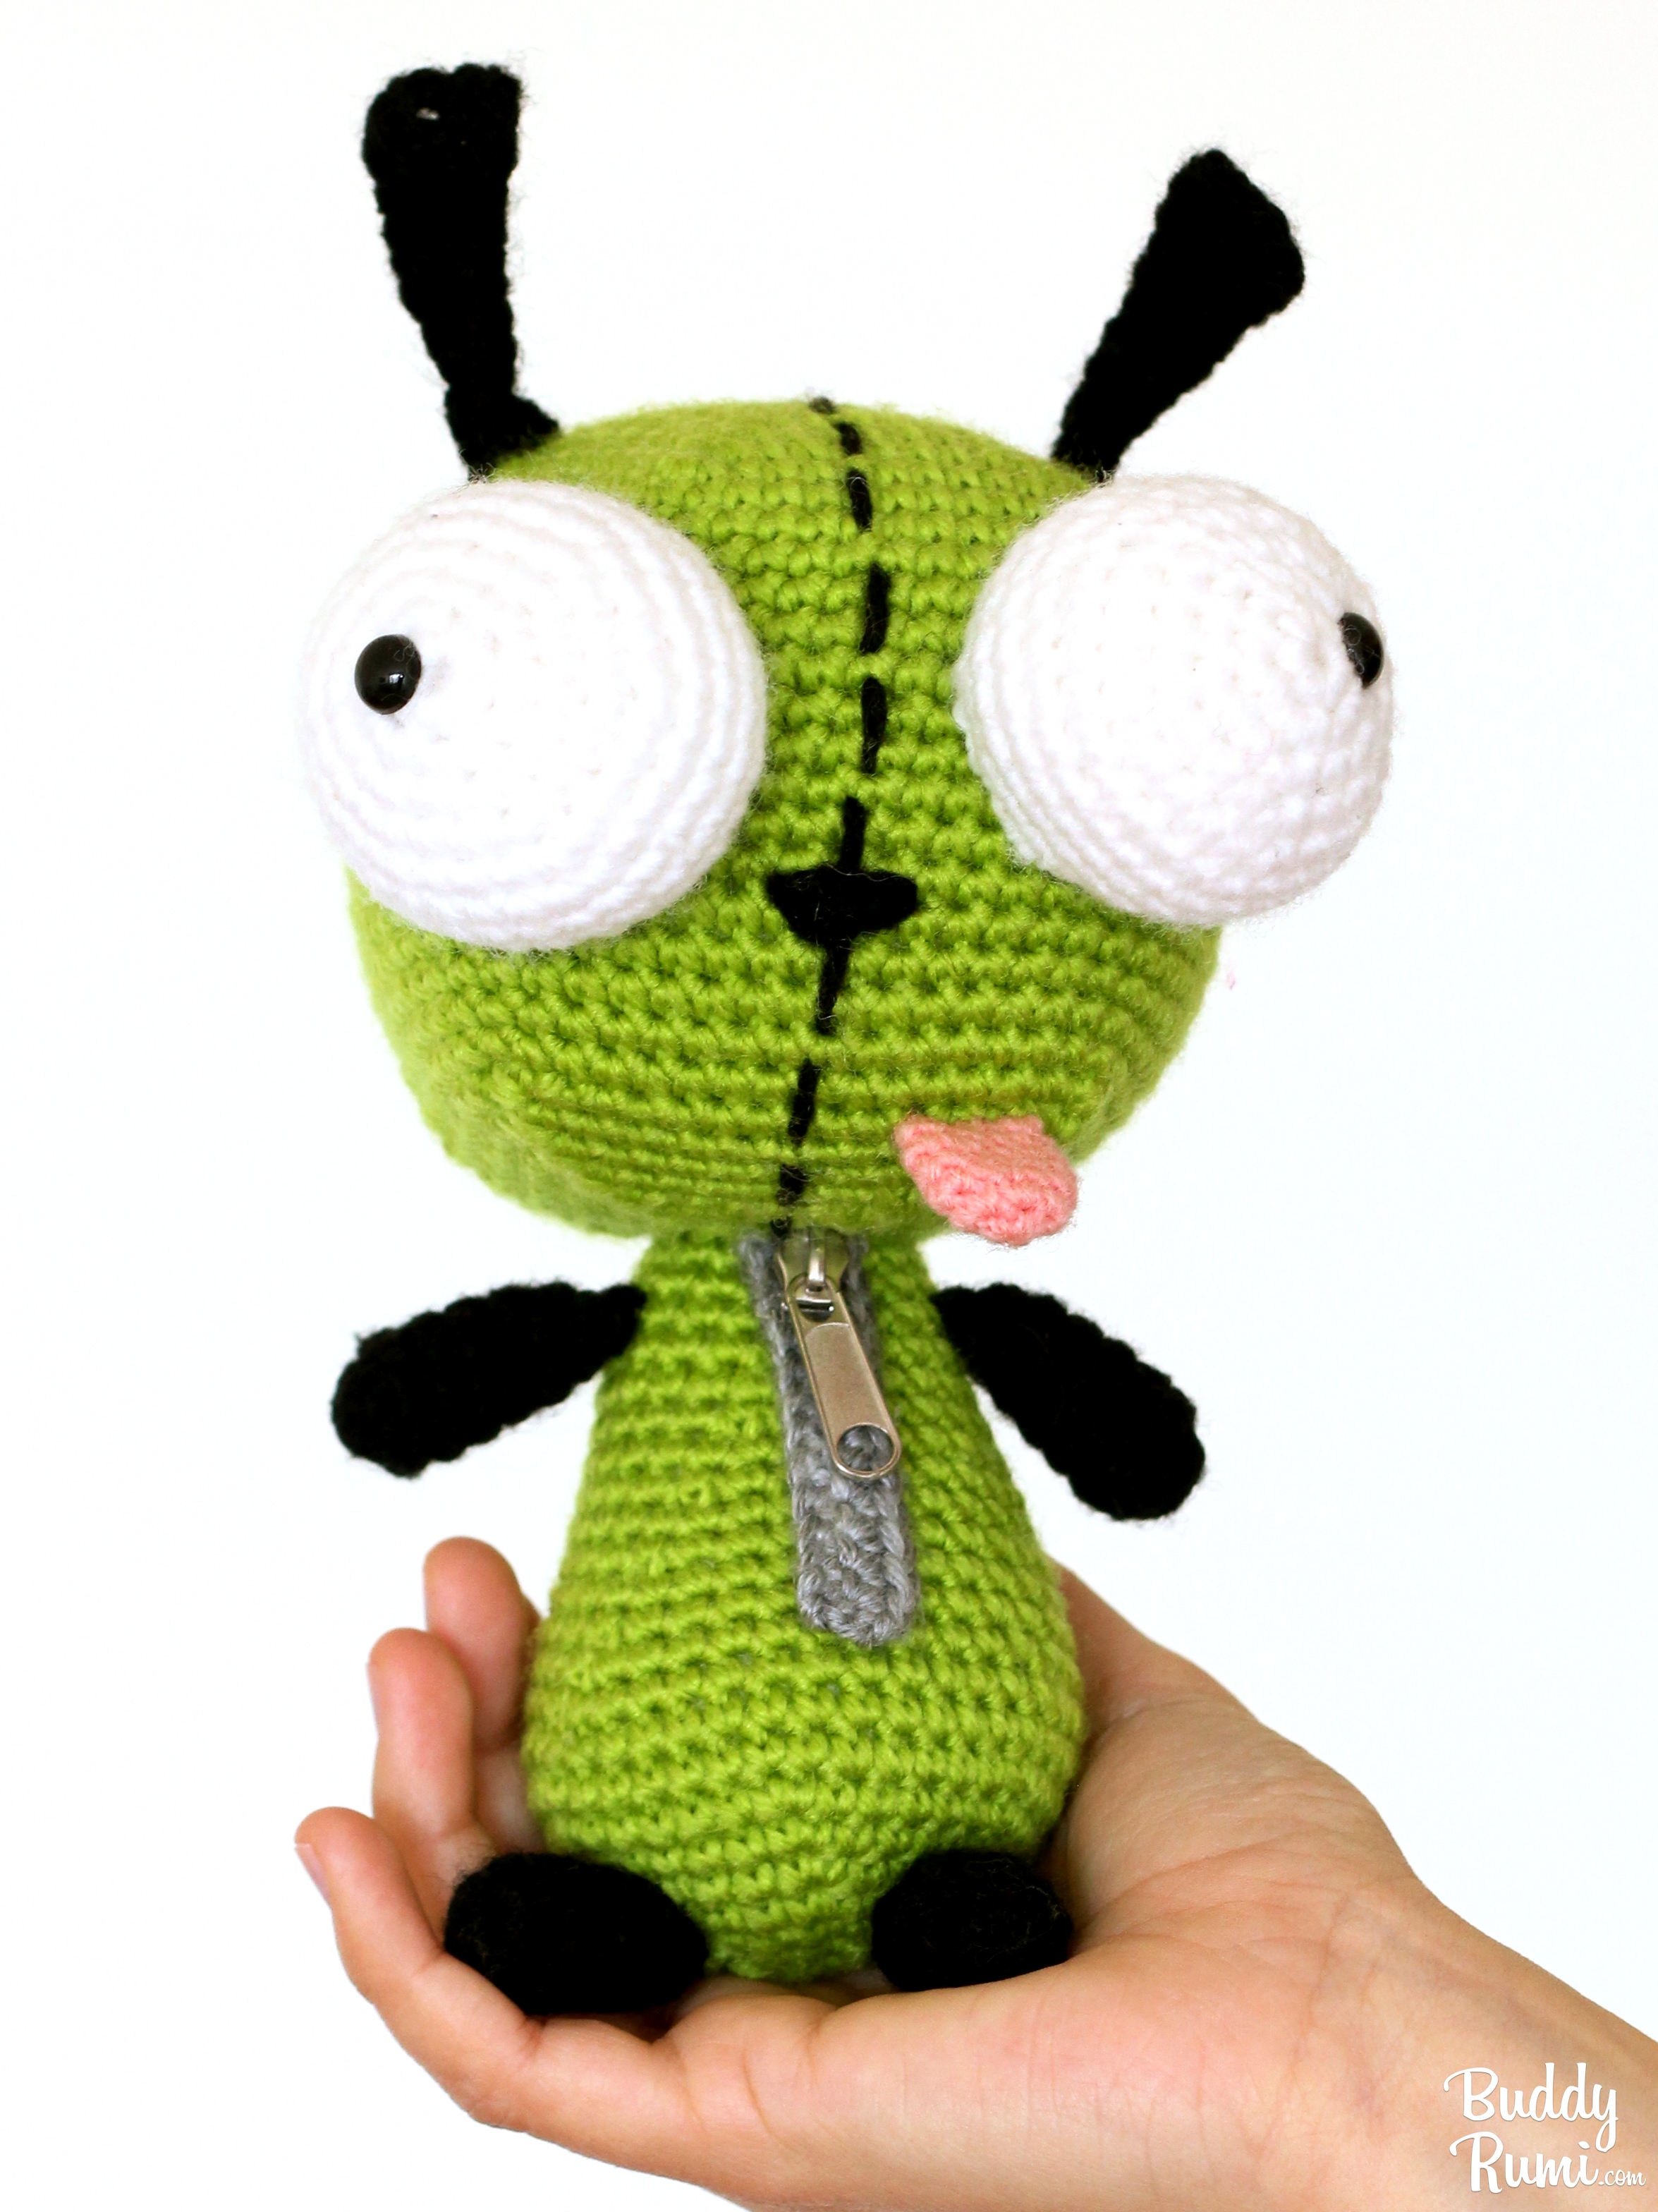 Crochet amigurumi Gir from Invader Zim